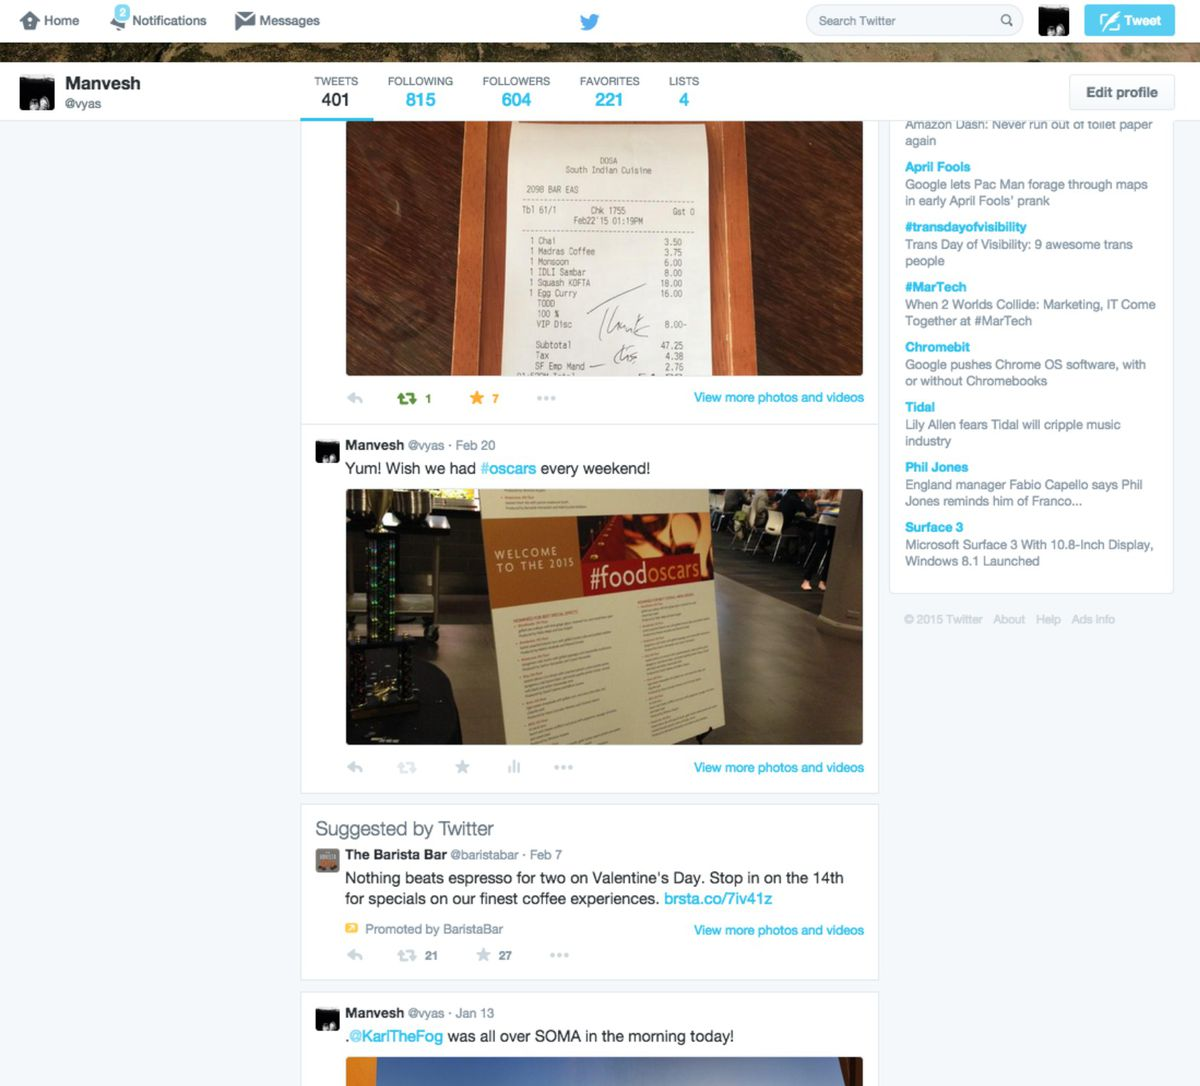 Twitter is now showing promoted tweets within the streams on user profiles.